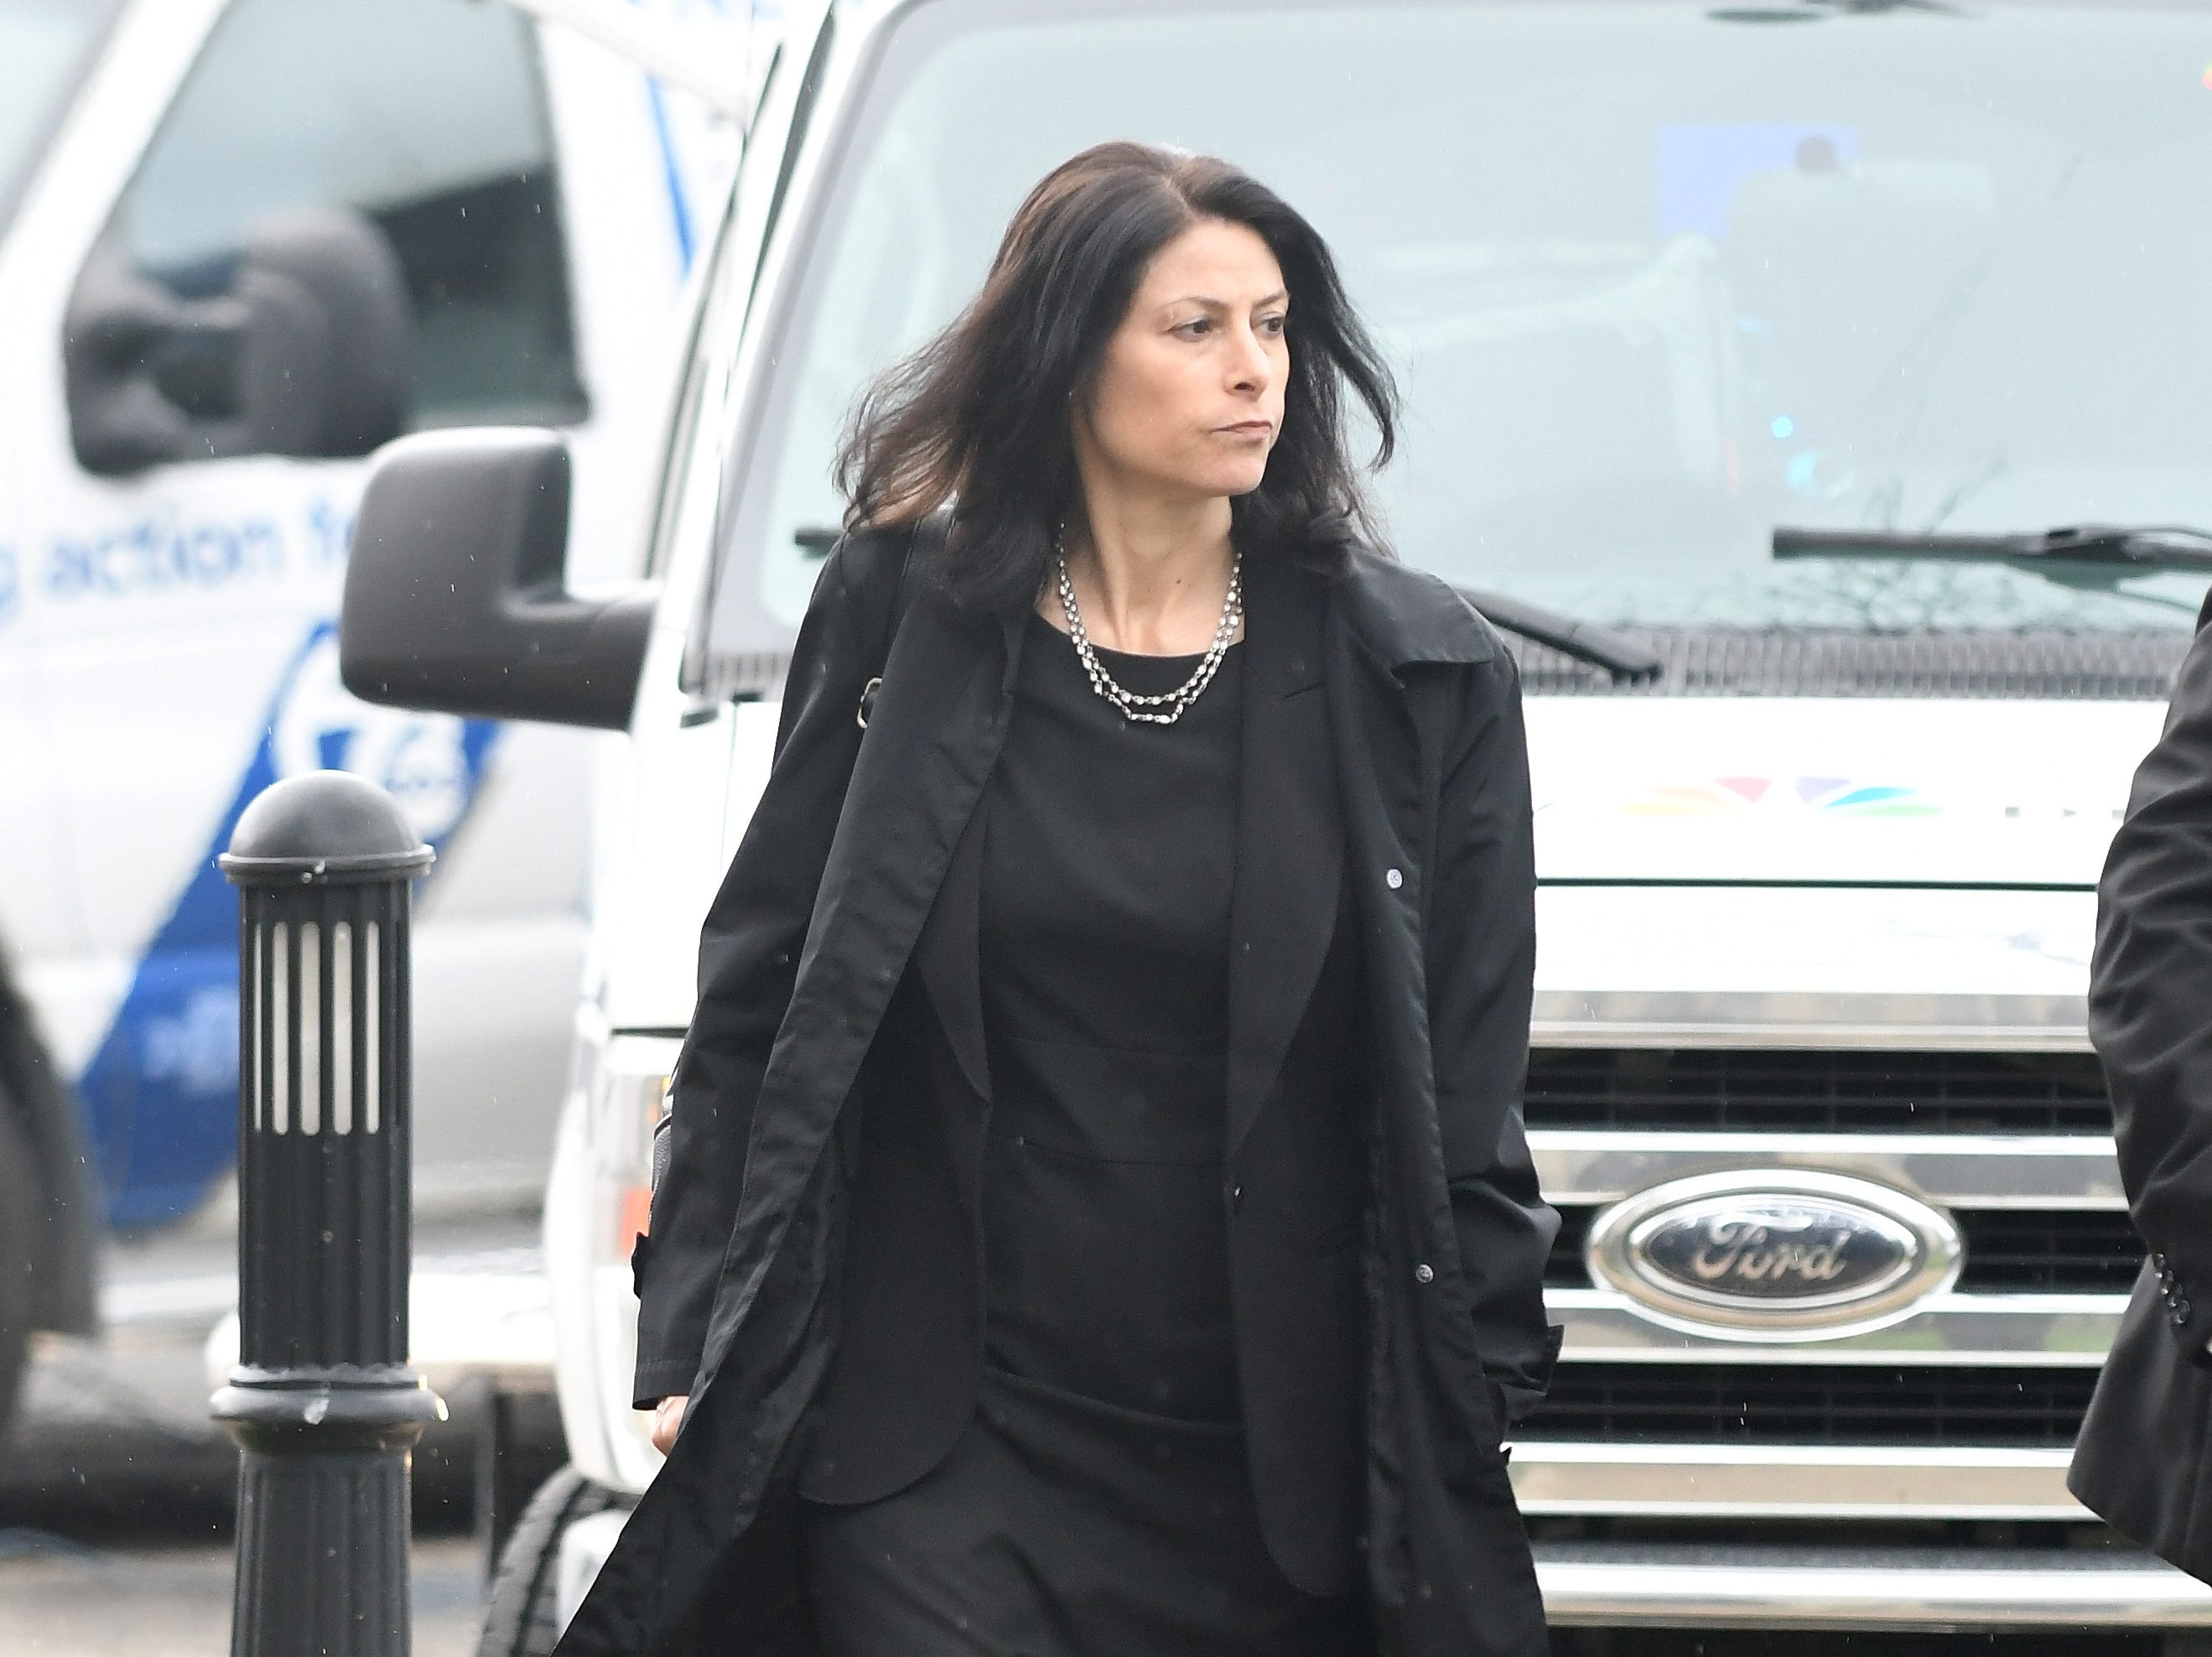 Michigan Attorney General Dana Nessel arrives for the funeral of Judge Damon Keith.